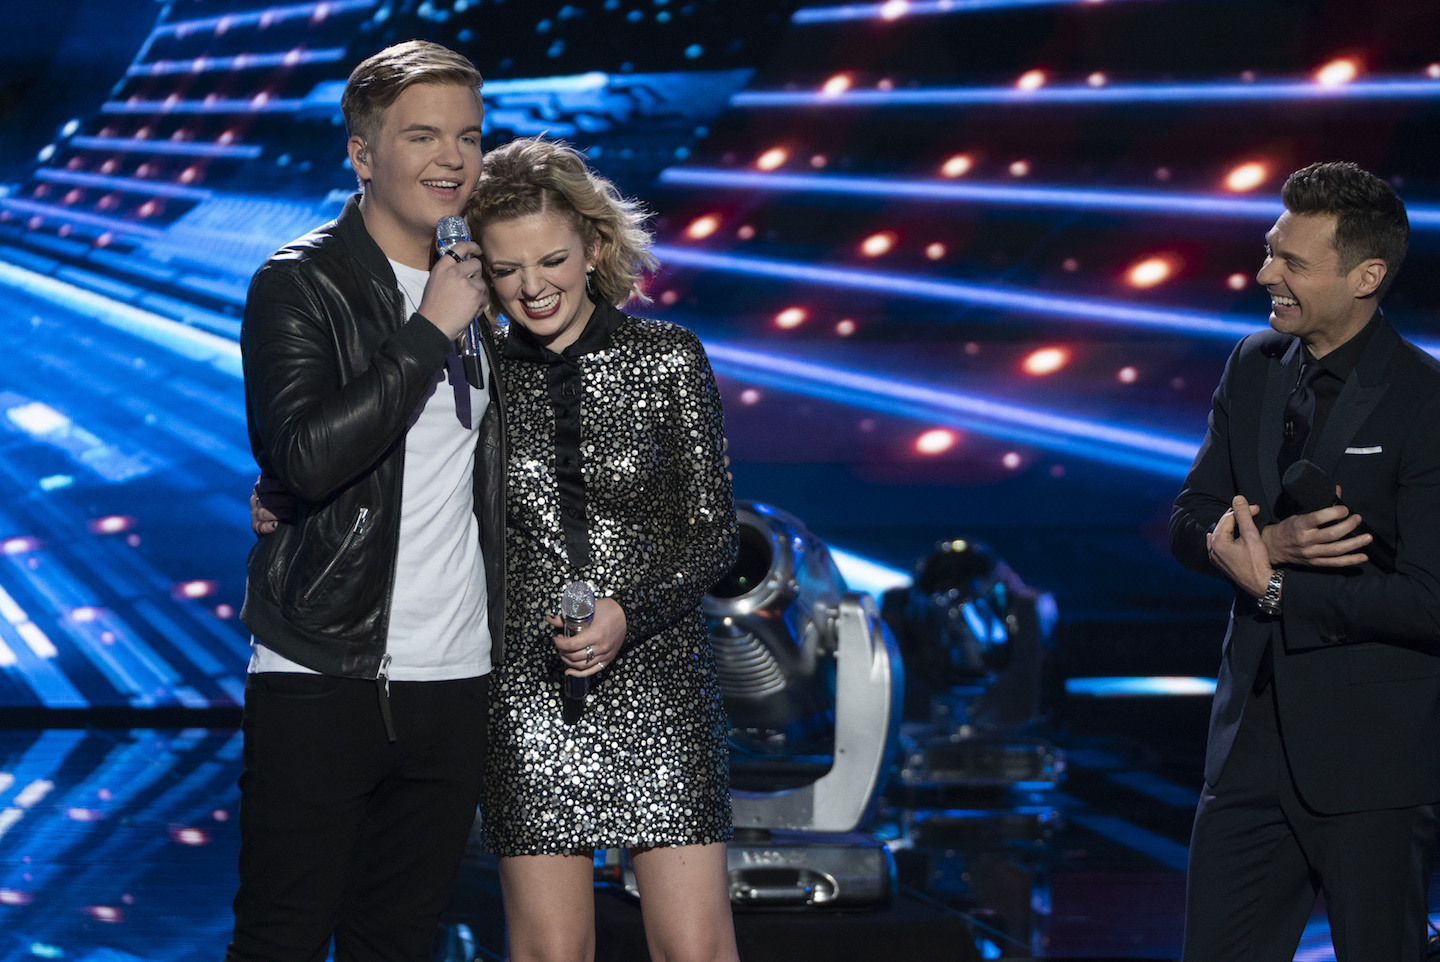 'American Idol' Finale: Katy Perry's Pick To Win Season 16